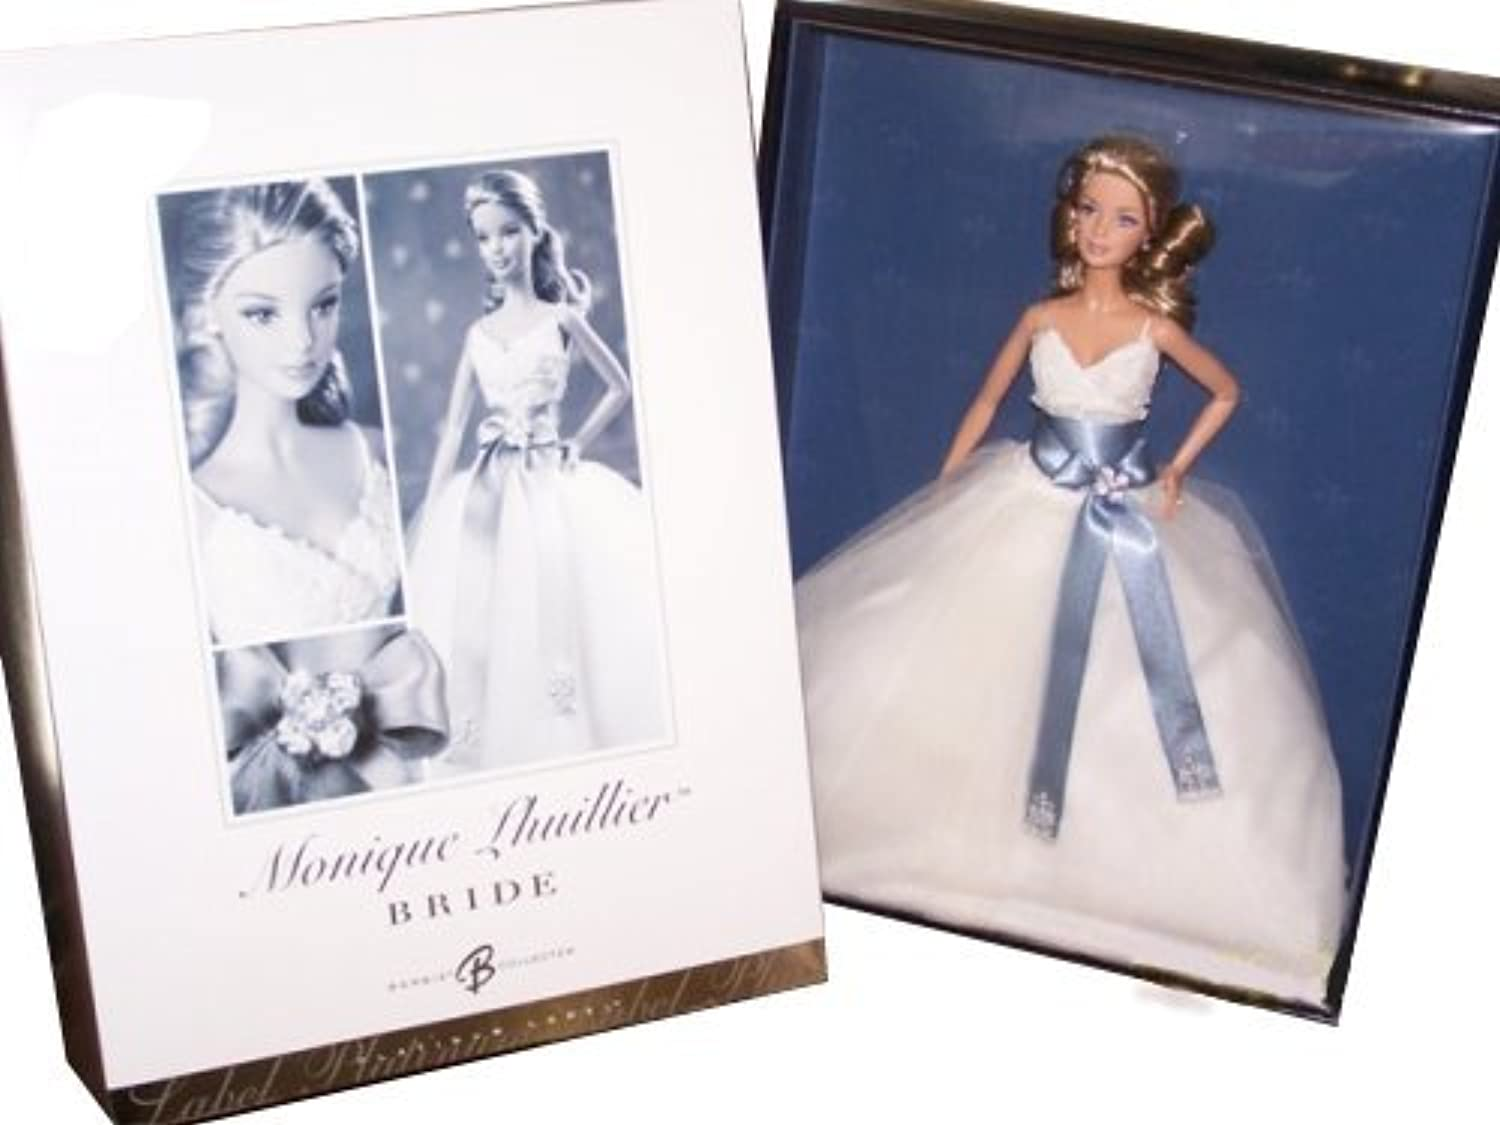 Barbie Collector   J0975 Monique Lhullier Bride 999 St, weltweit Platin Label